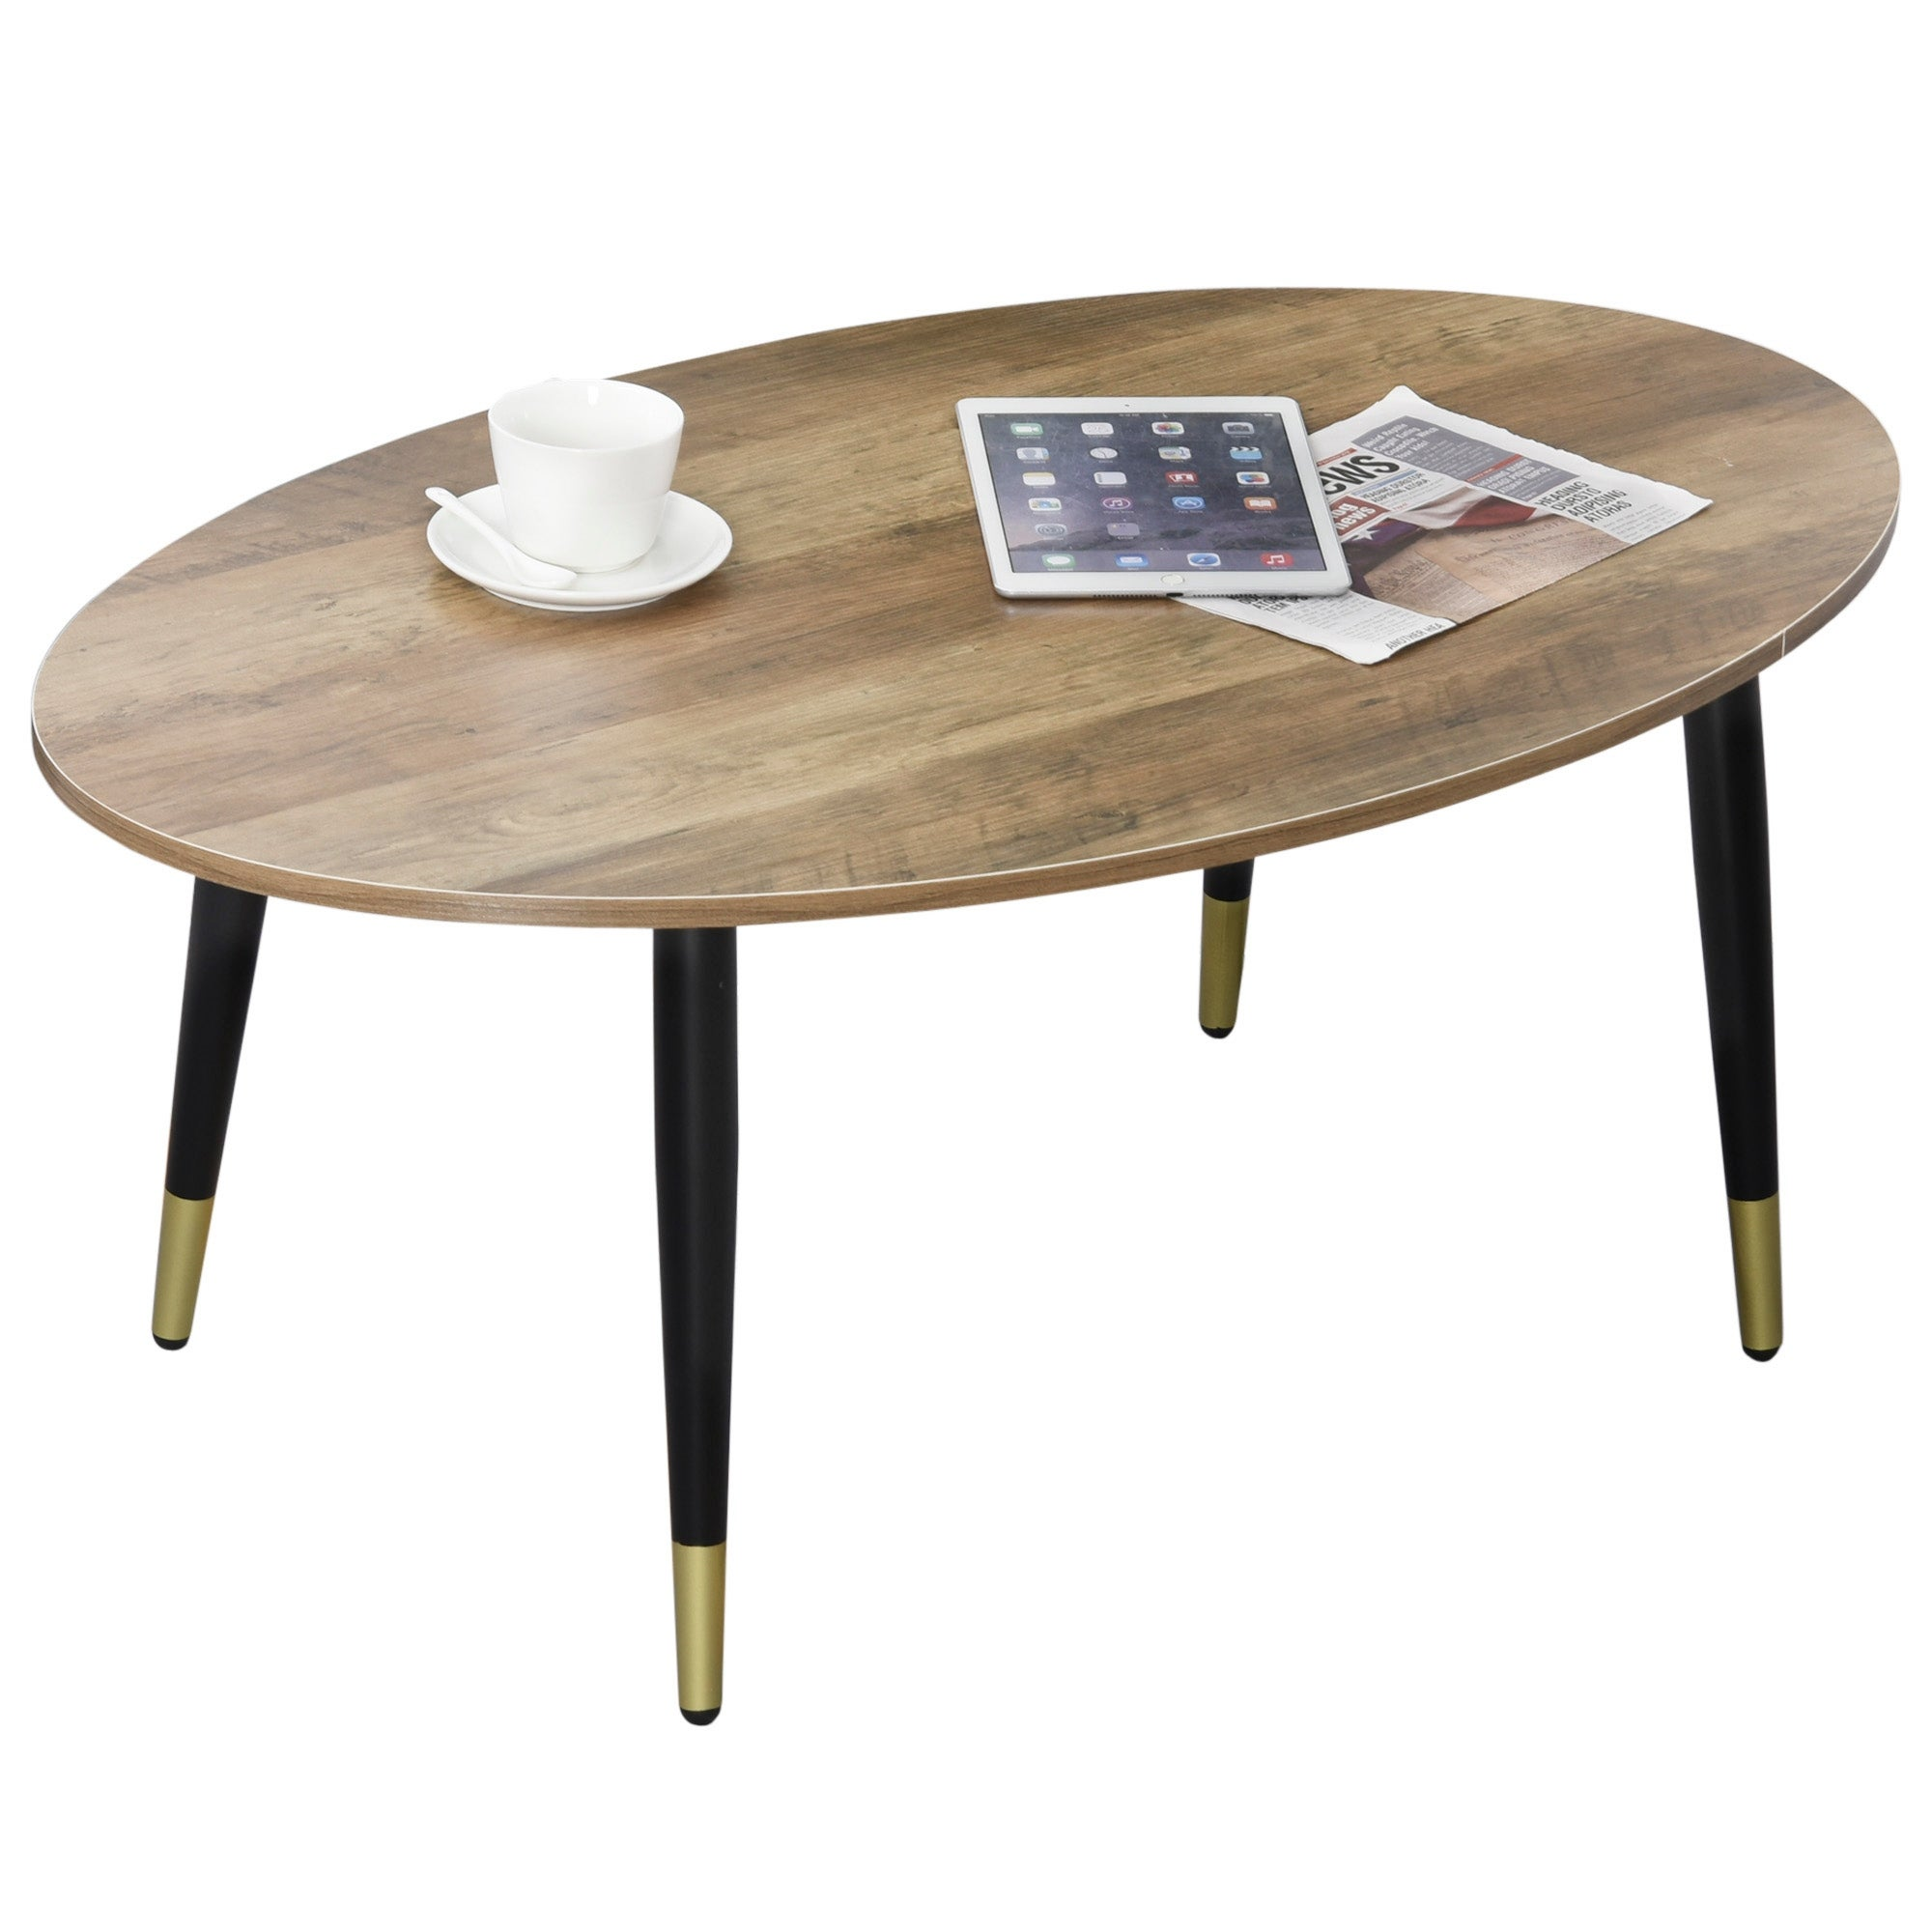 Picture of: Homcom Oval Modern Simple Coffee Table With Strong Metal Legs Quality Build Material Multifunctional Design Brown On Sale Overstock 31977936